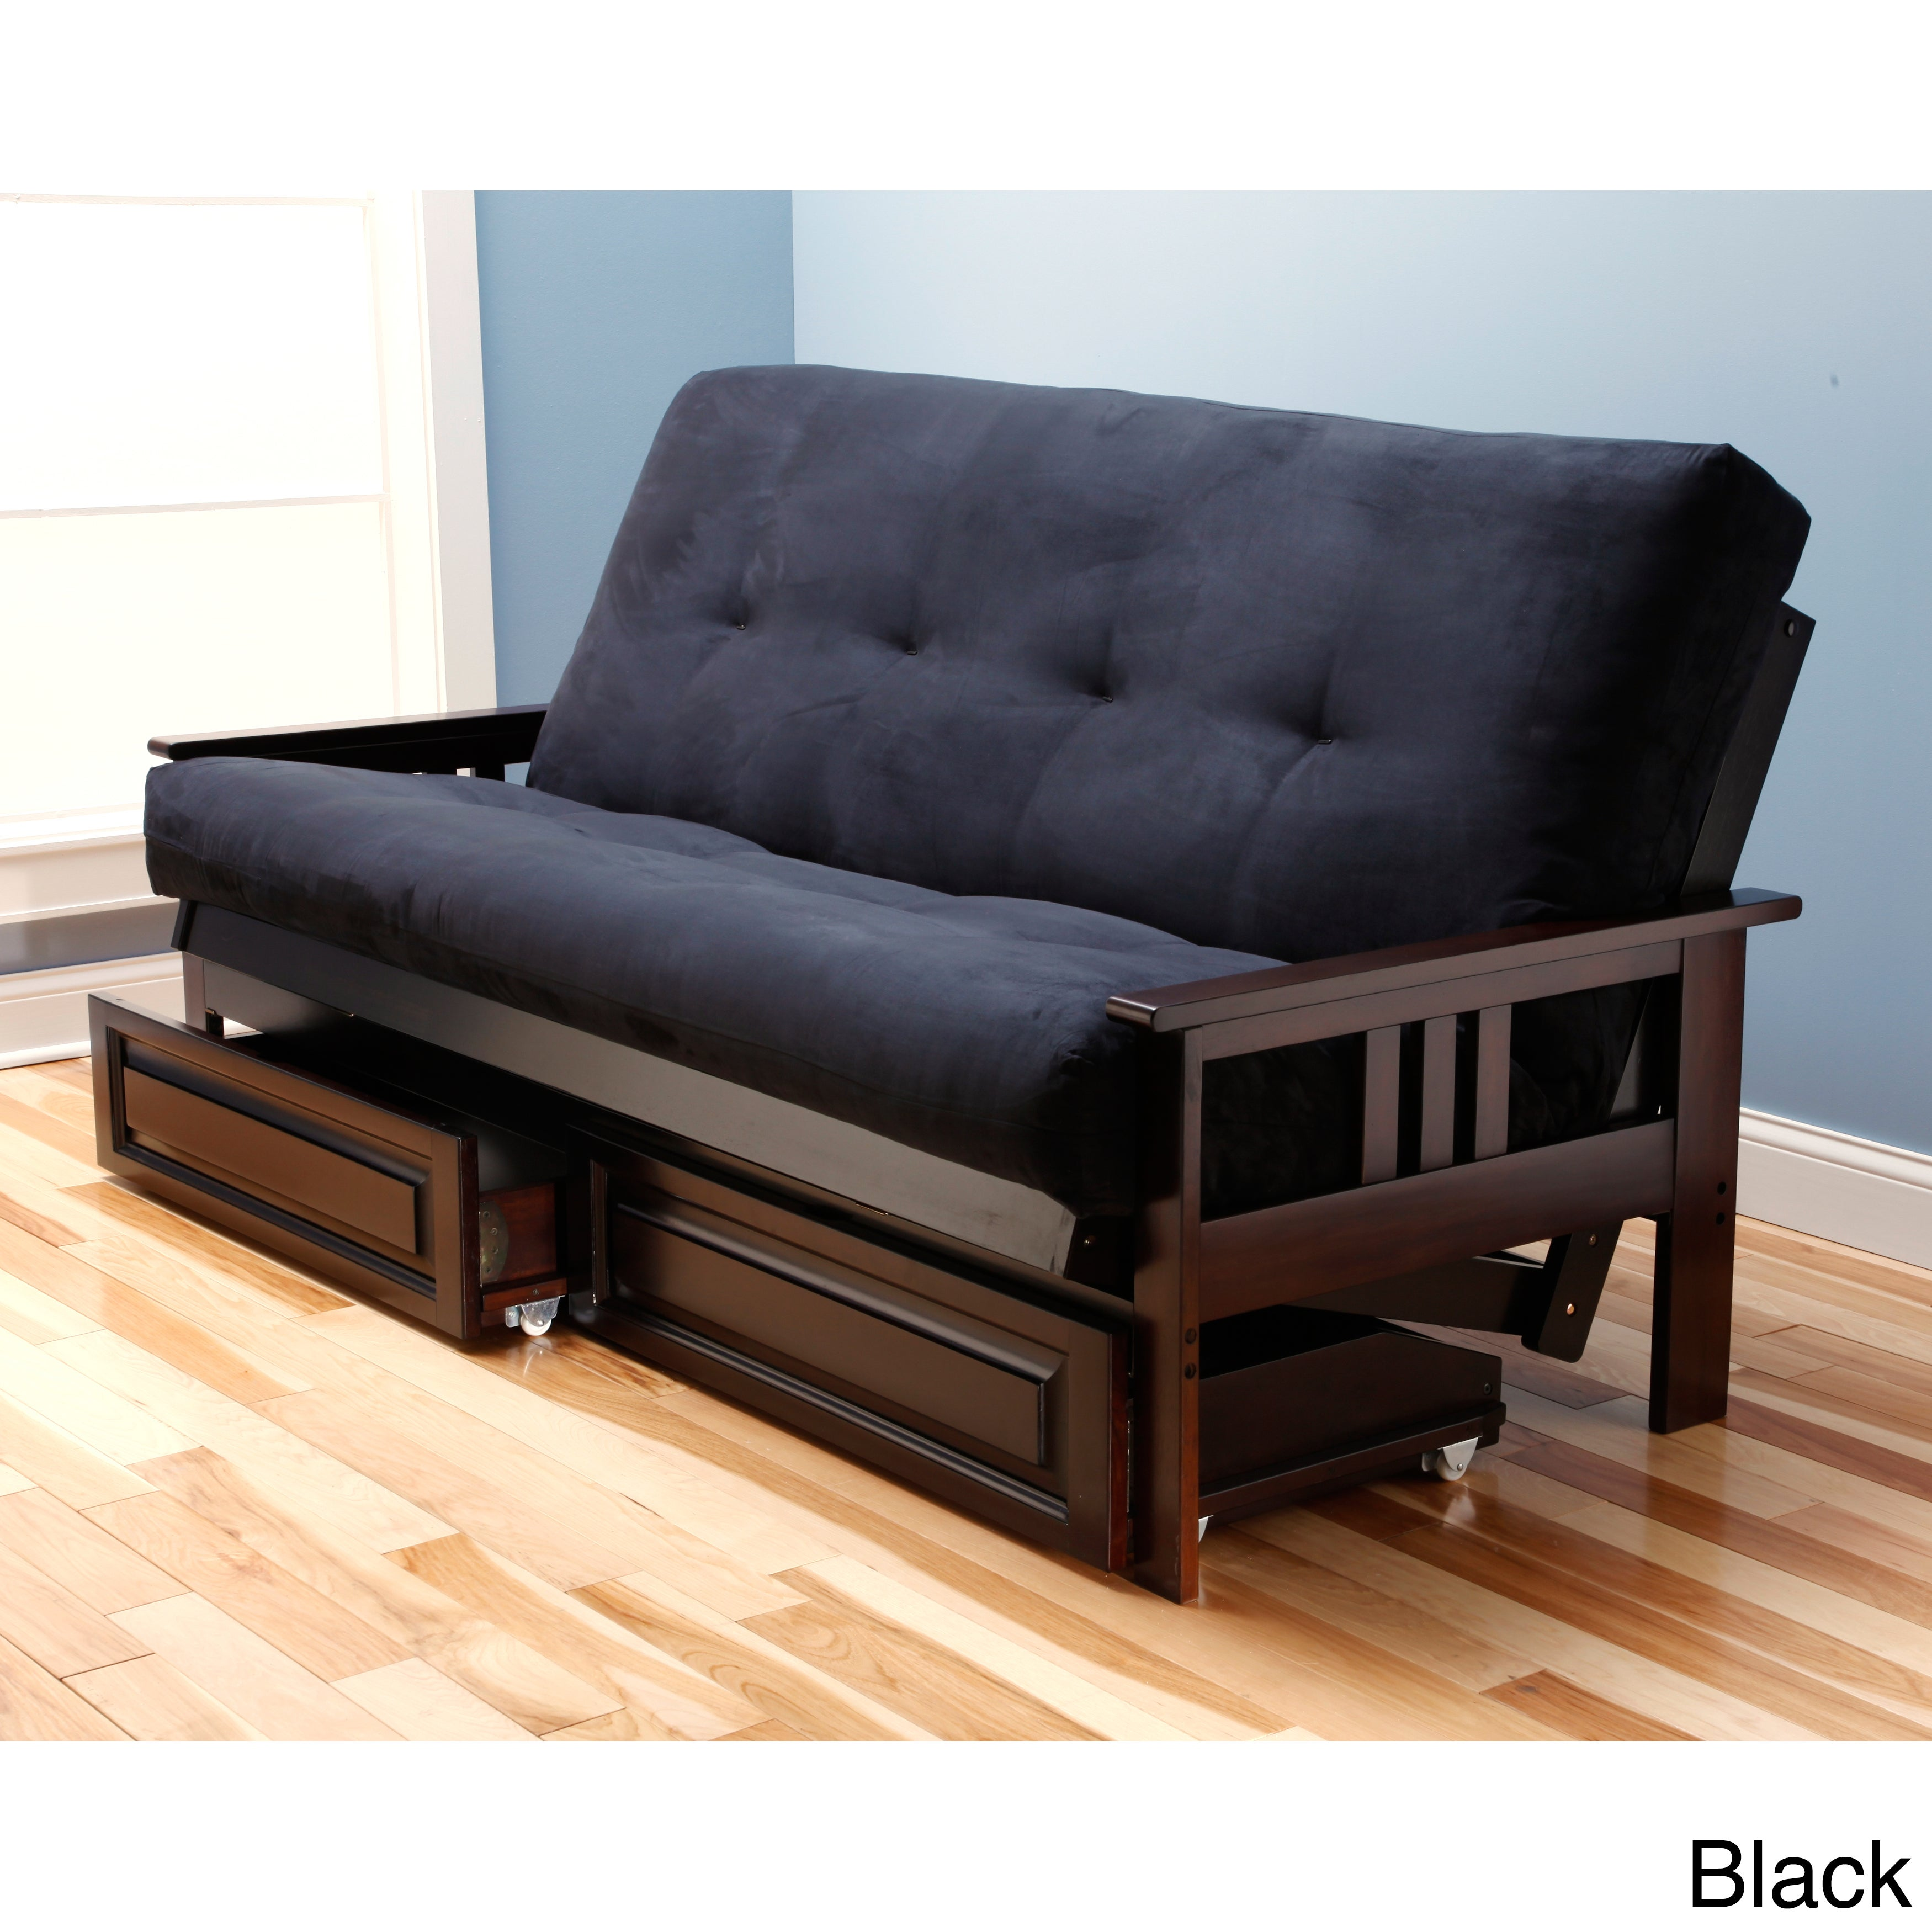 Beli Mont Multi-flex Microsuede Futon with Drawers at Sears.com